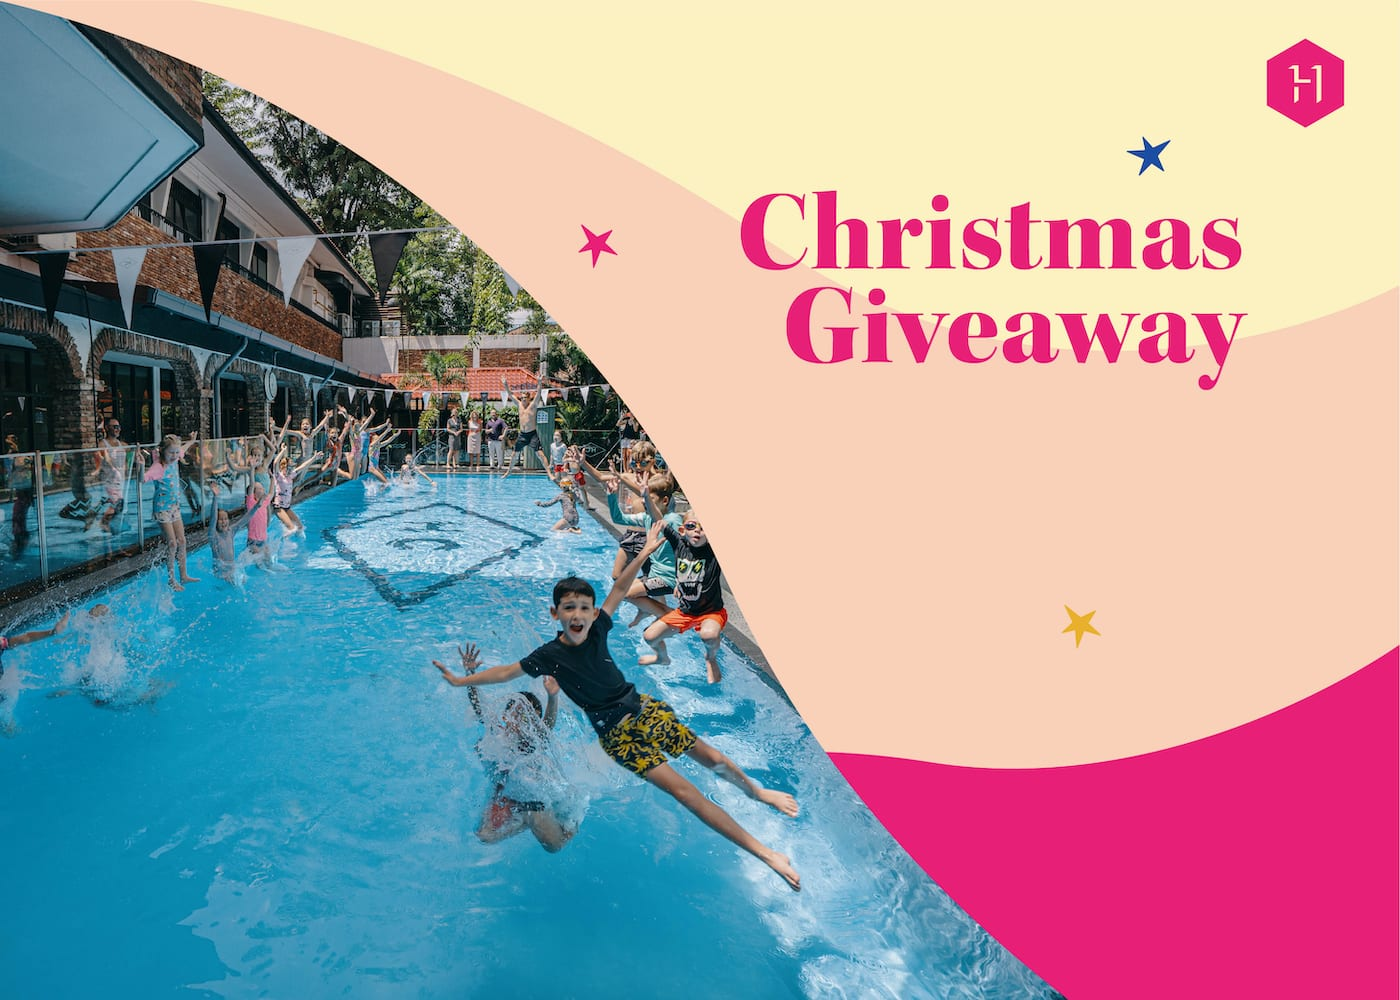 It's giveaway time: win a free kids' birthday party worth $690 from the Hollandse Club!